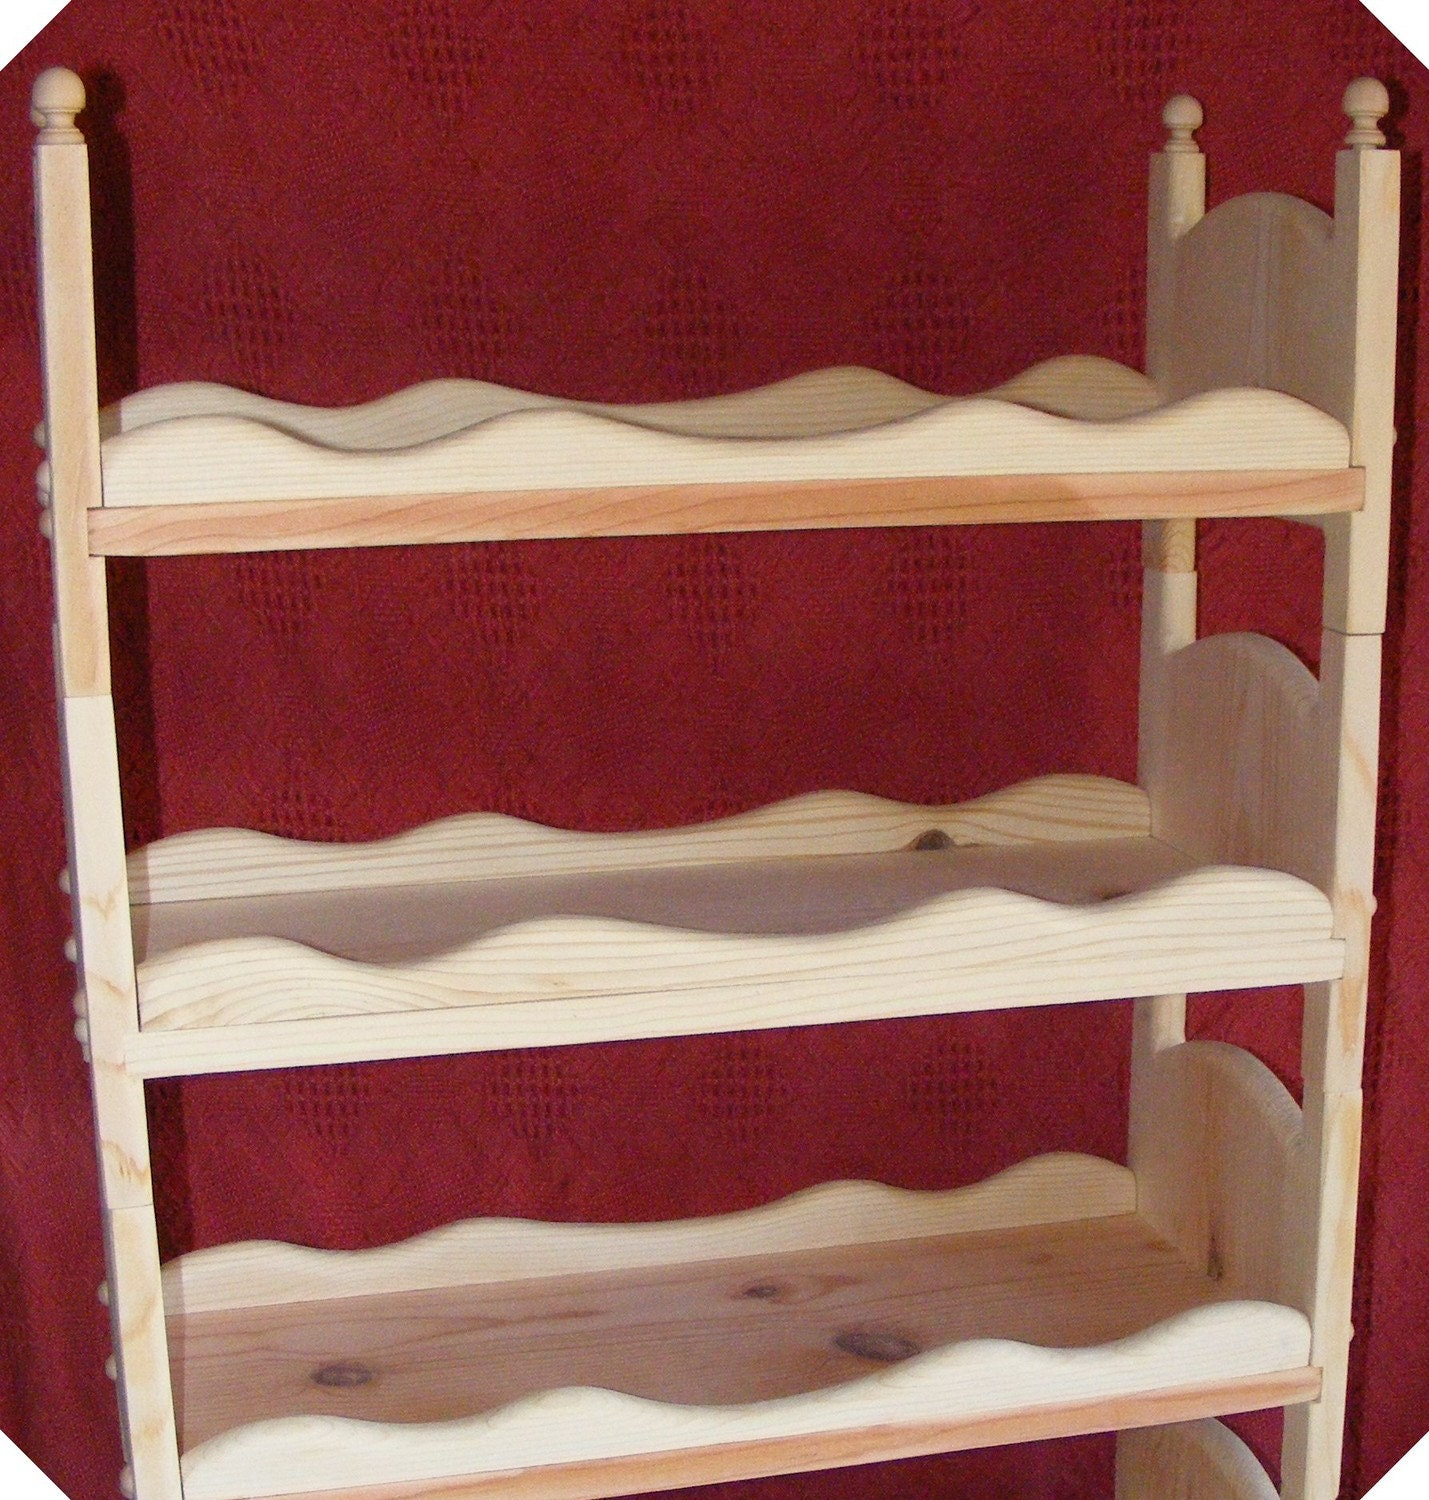 Bunk Bed Dolls: Stackable American Girl Triple Doll Bunk Bed With Sides